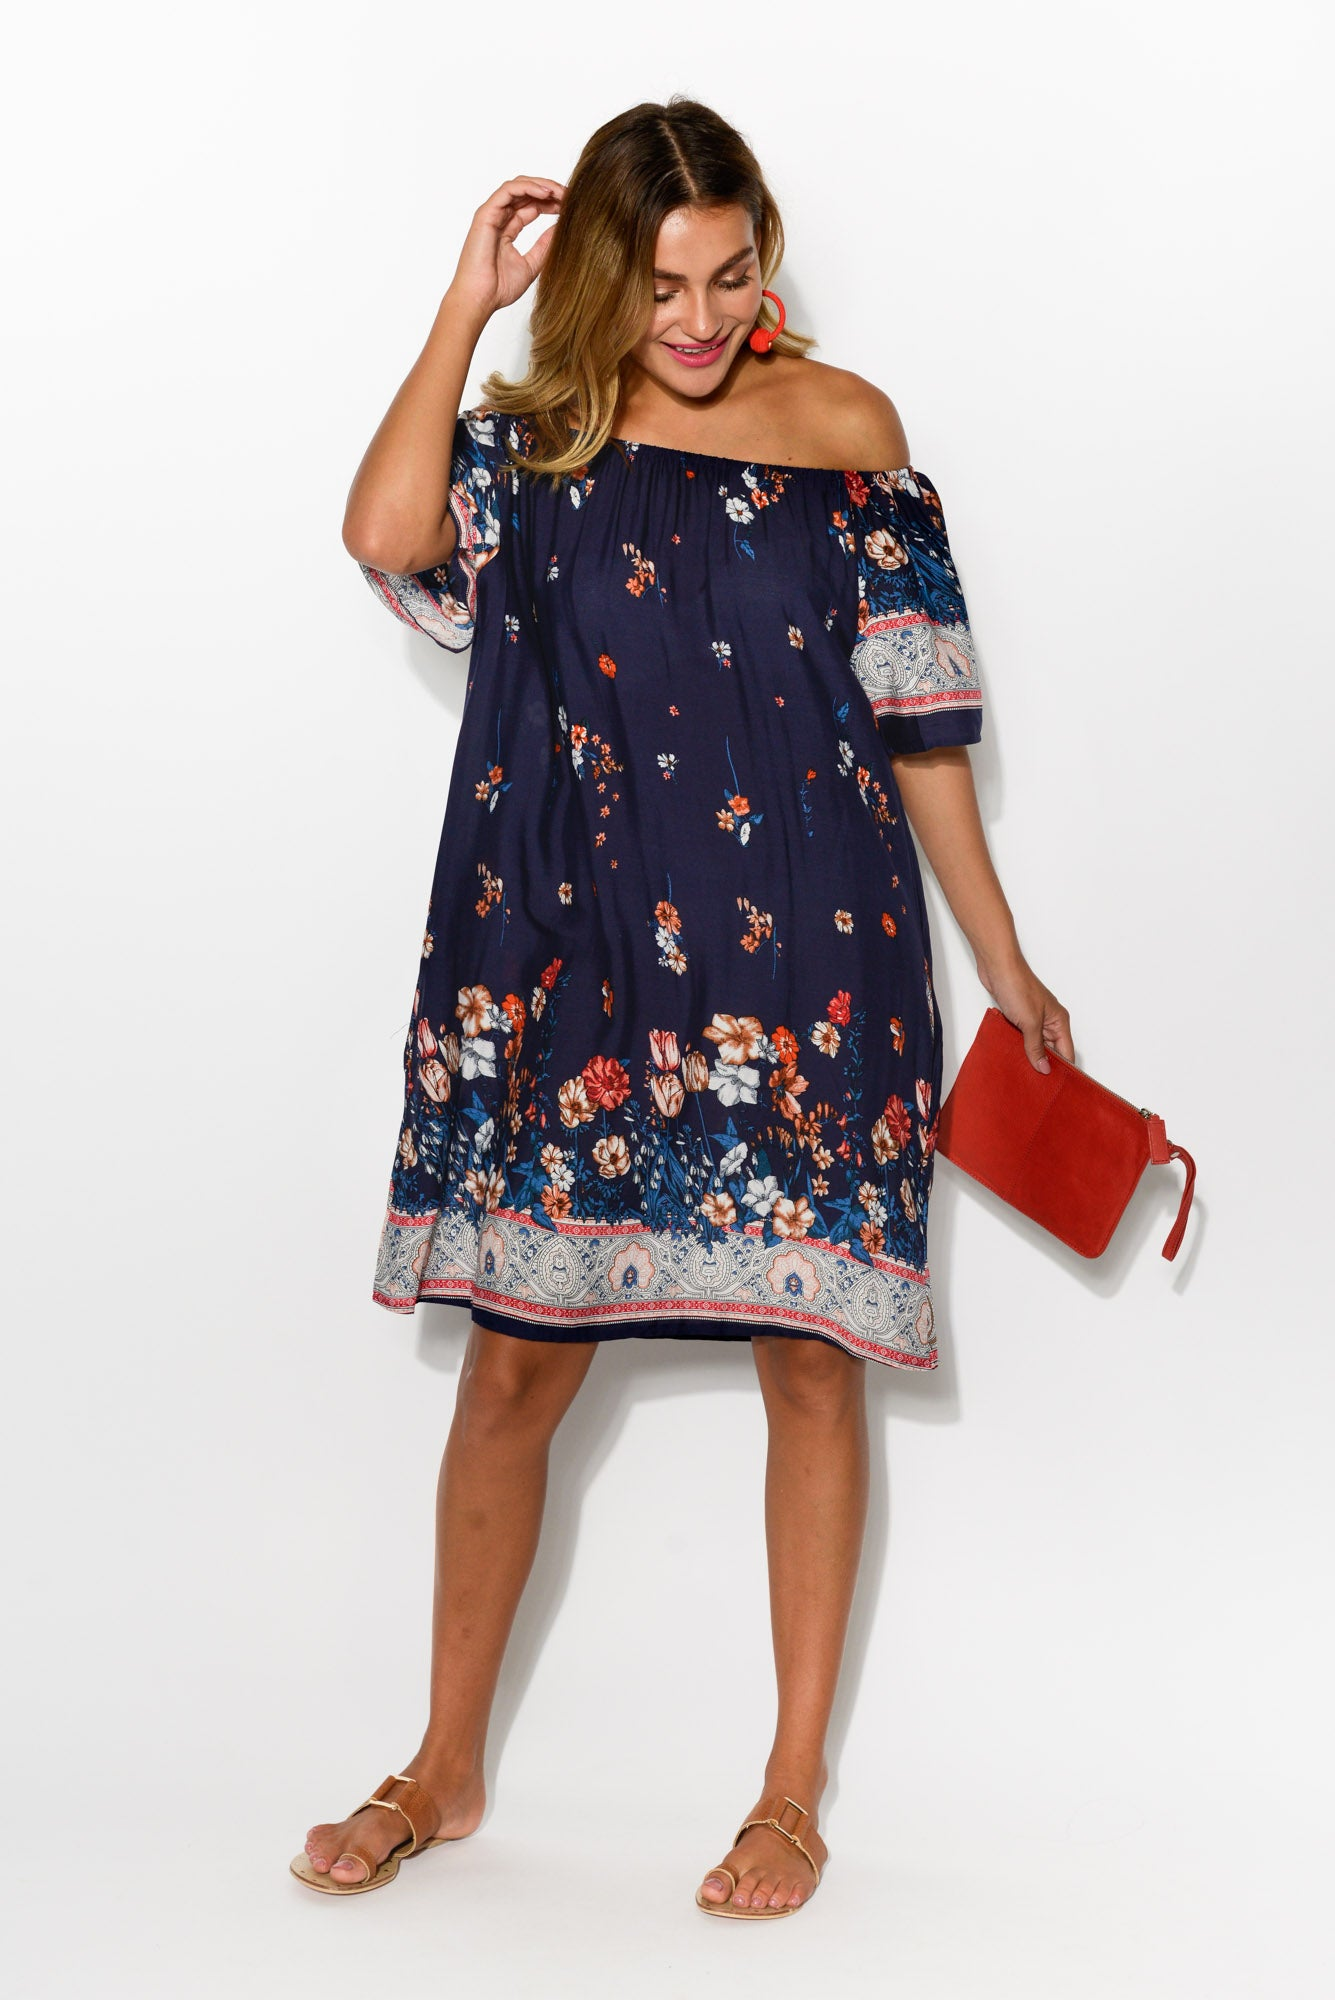 Lauren Navy Floral Off Shoulder Dress - Blue Bungalow